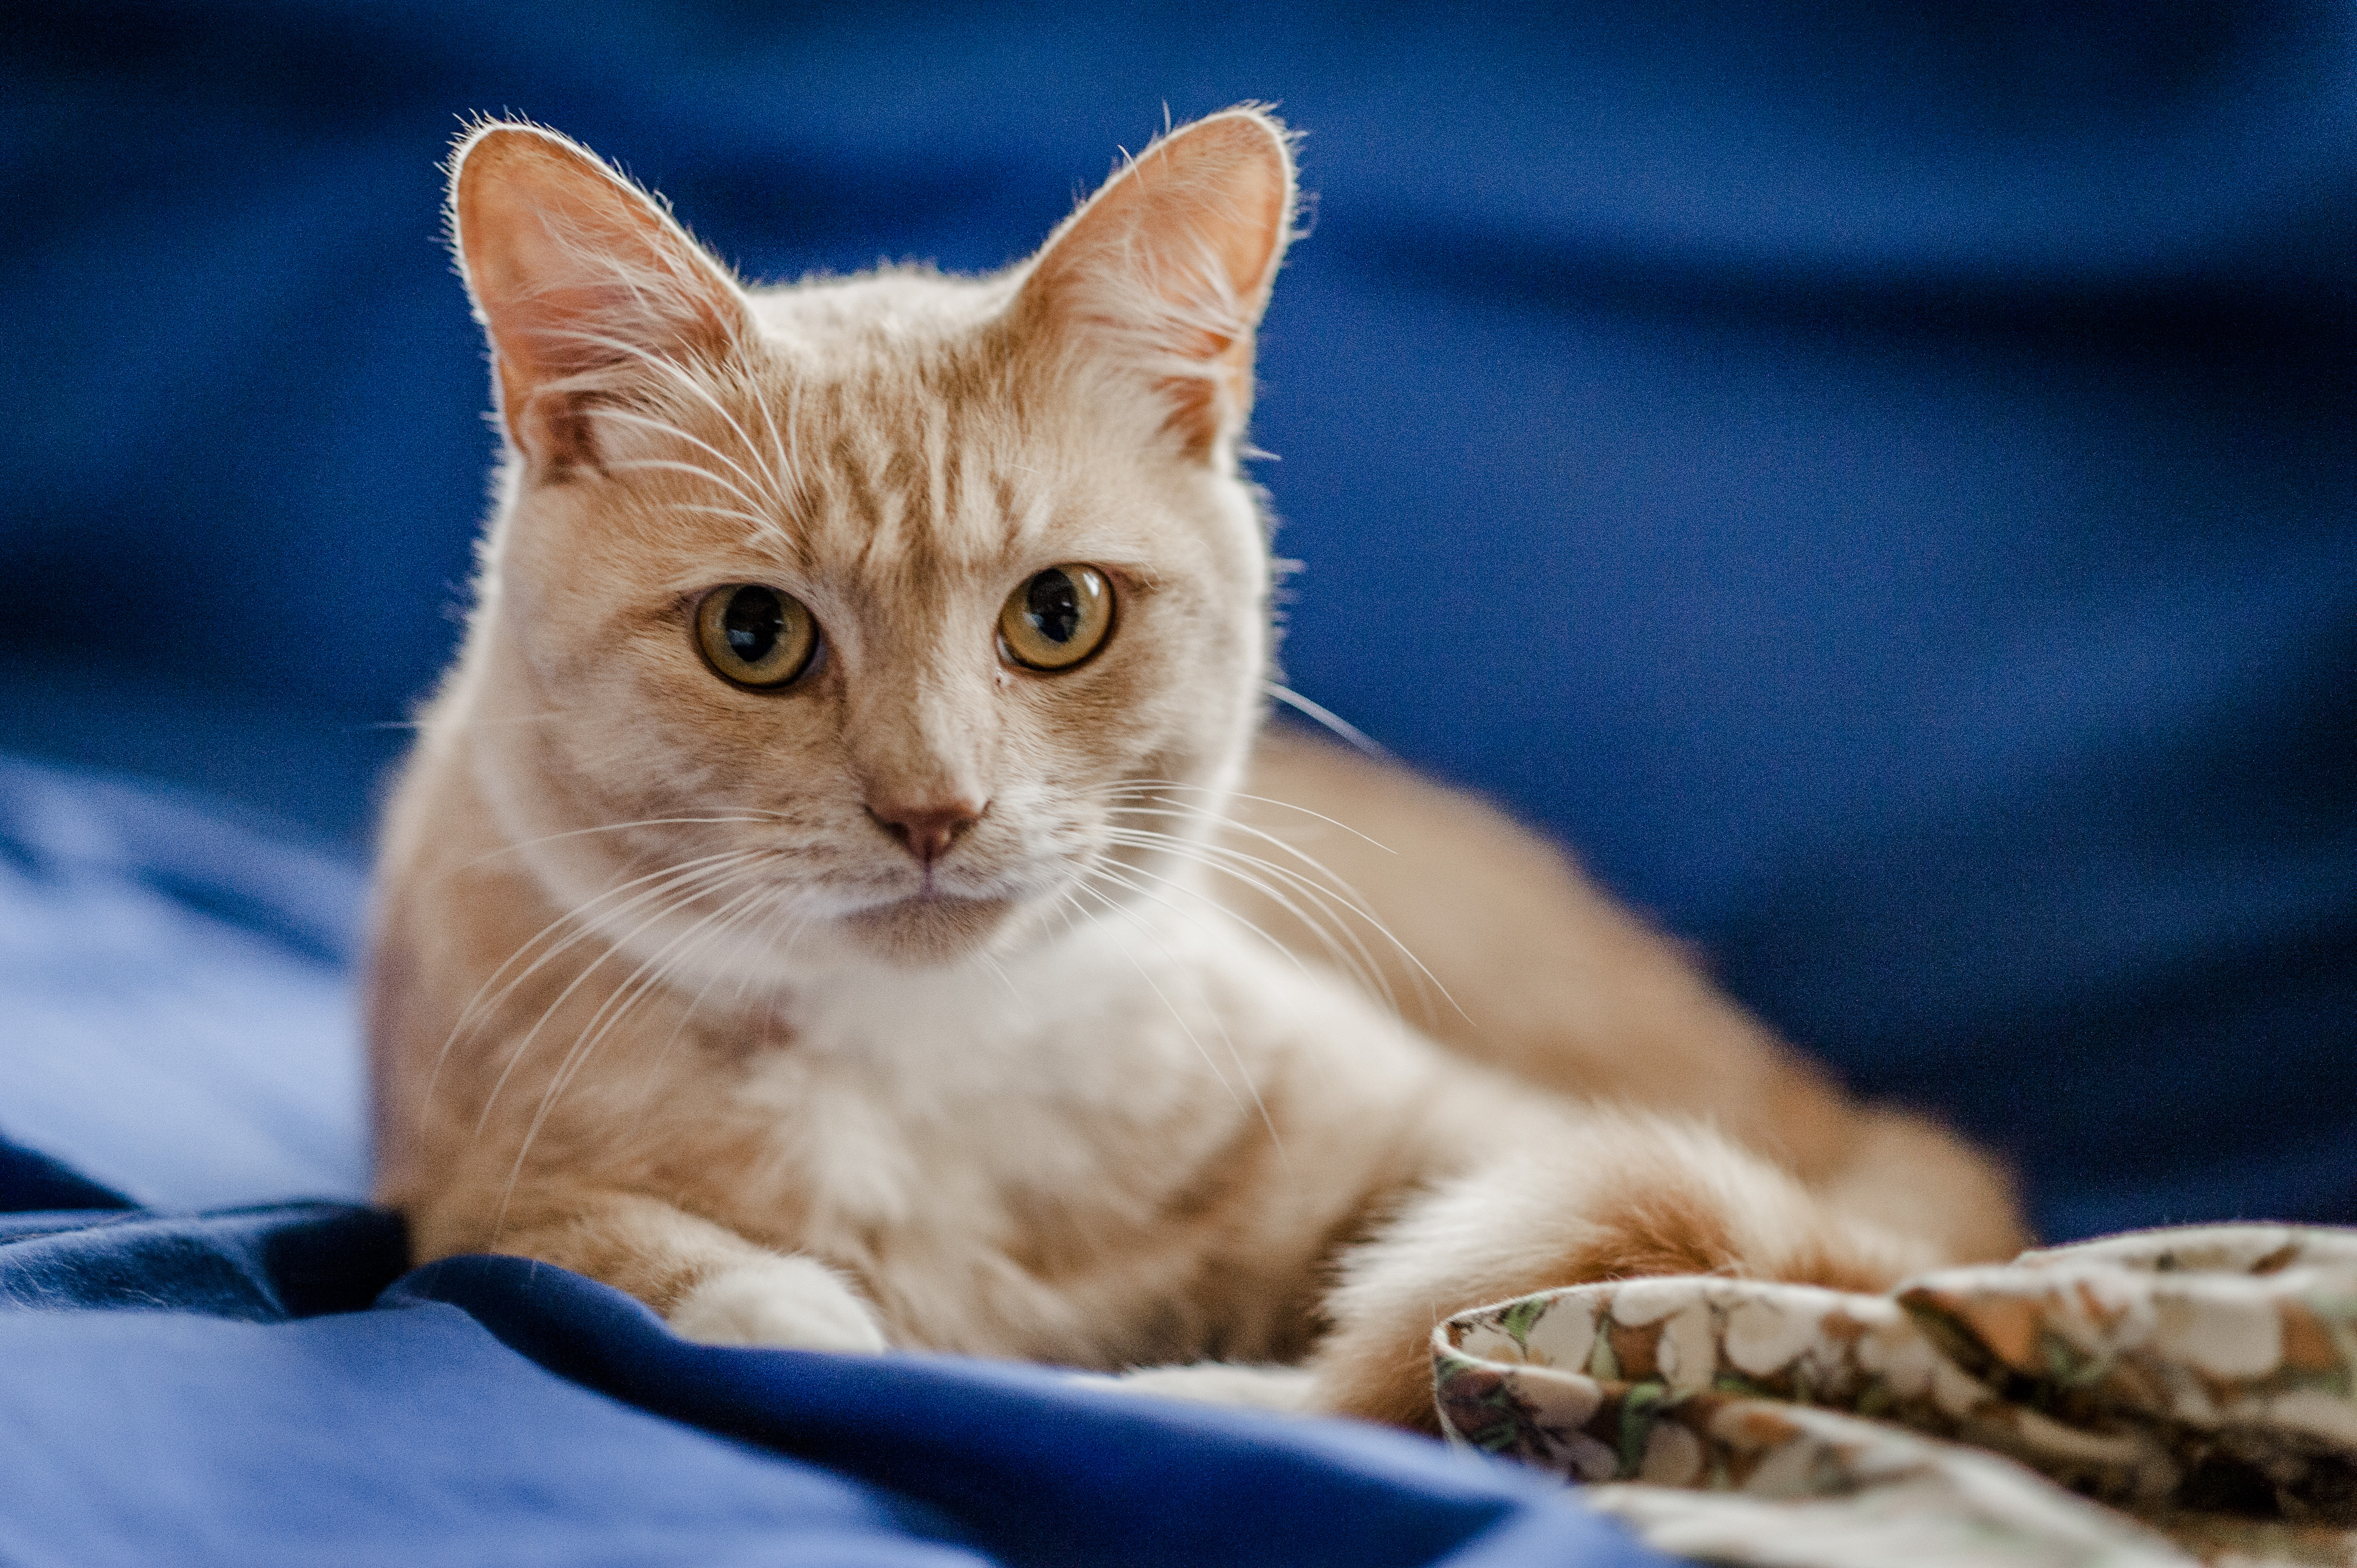 Caring for a cat with asthma | Feline asthma | Blue Cross